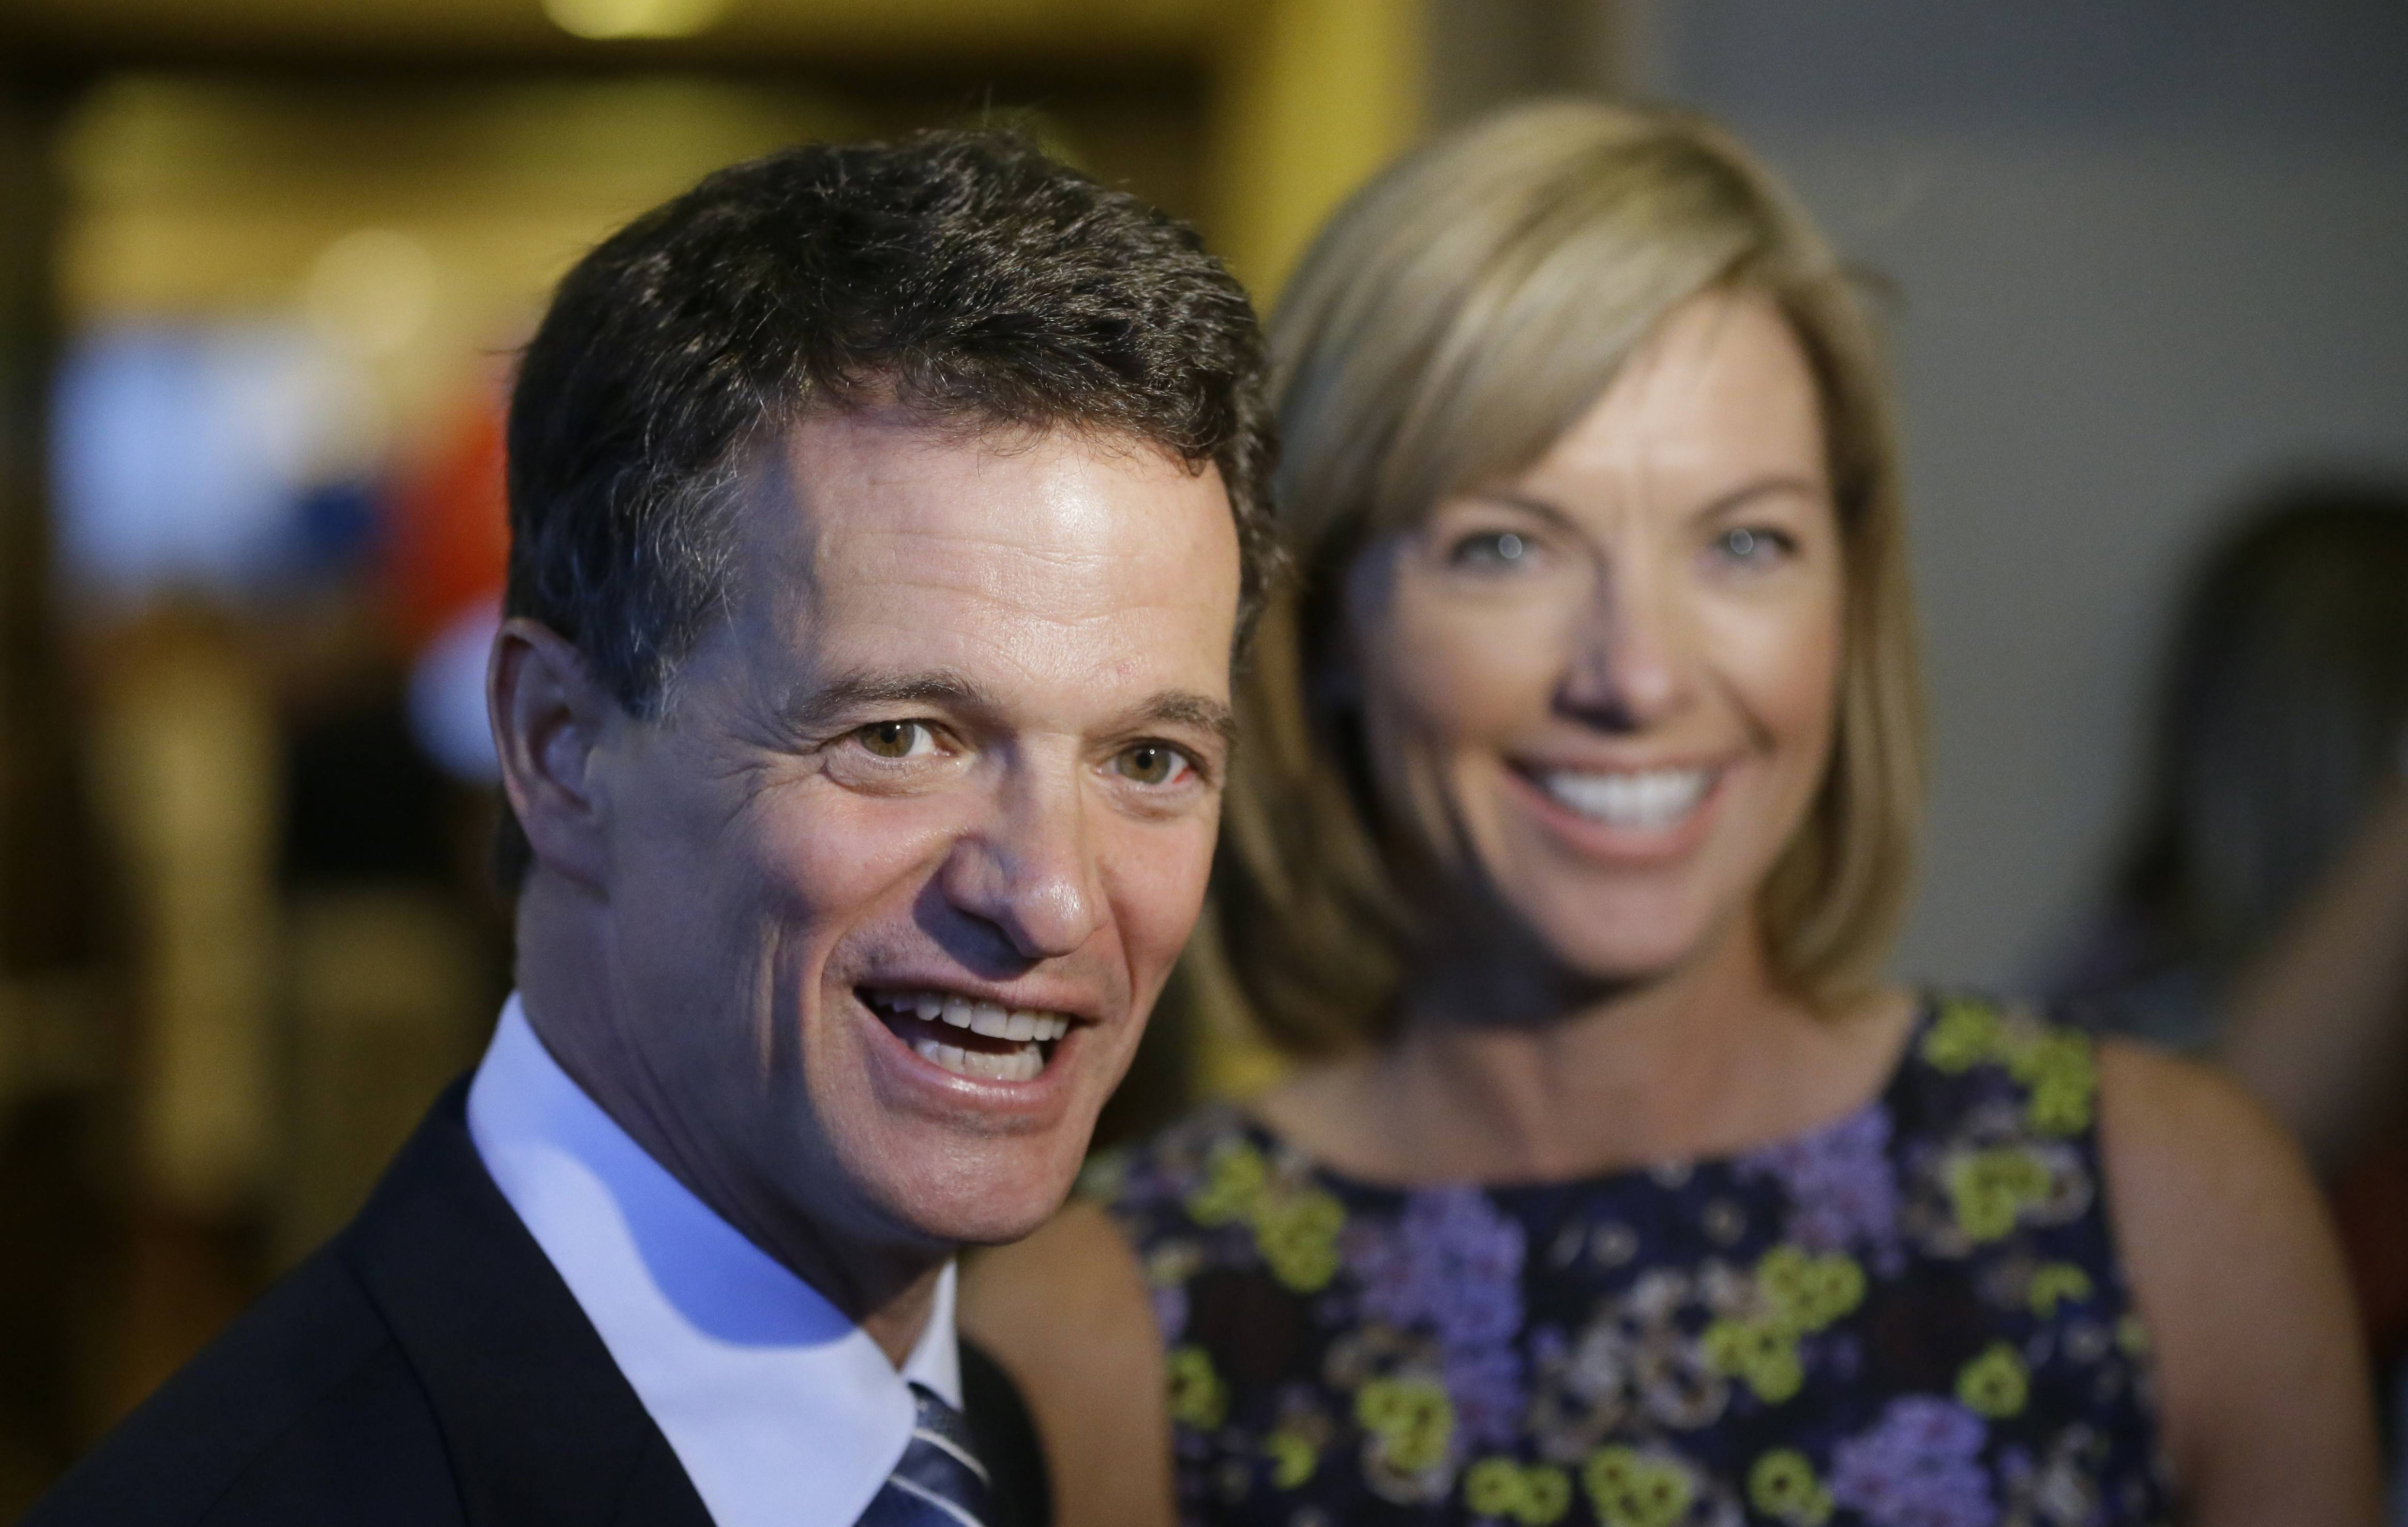 Republican David Trott, a candidate for Michigan's 11th congressional district, stands next to his wife, Kappy, Tuesday during an interview at his election night party in Troy, Mich. Trott defeated incumbent Rep. Kerry Bentivolio.